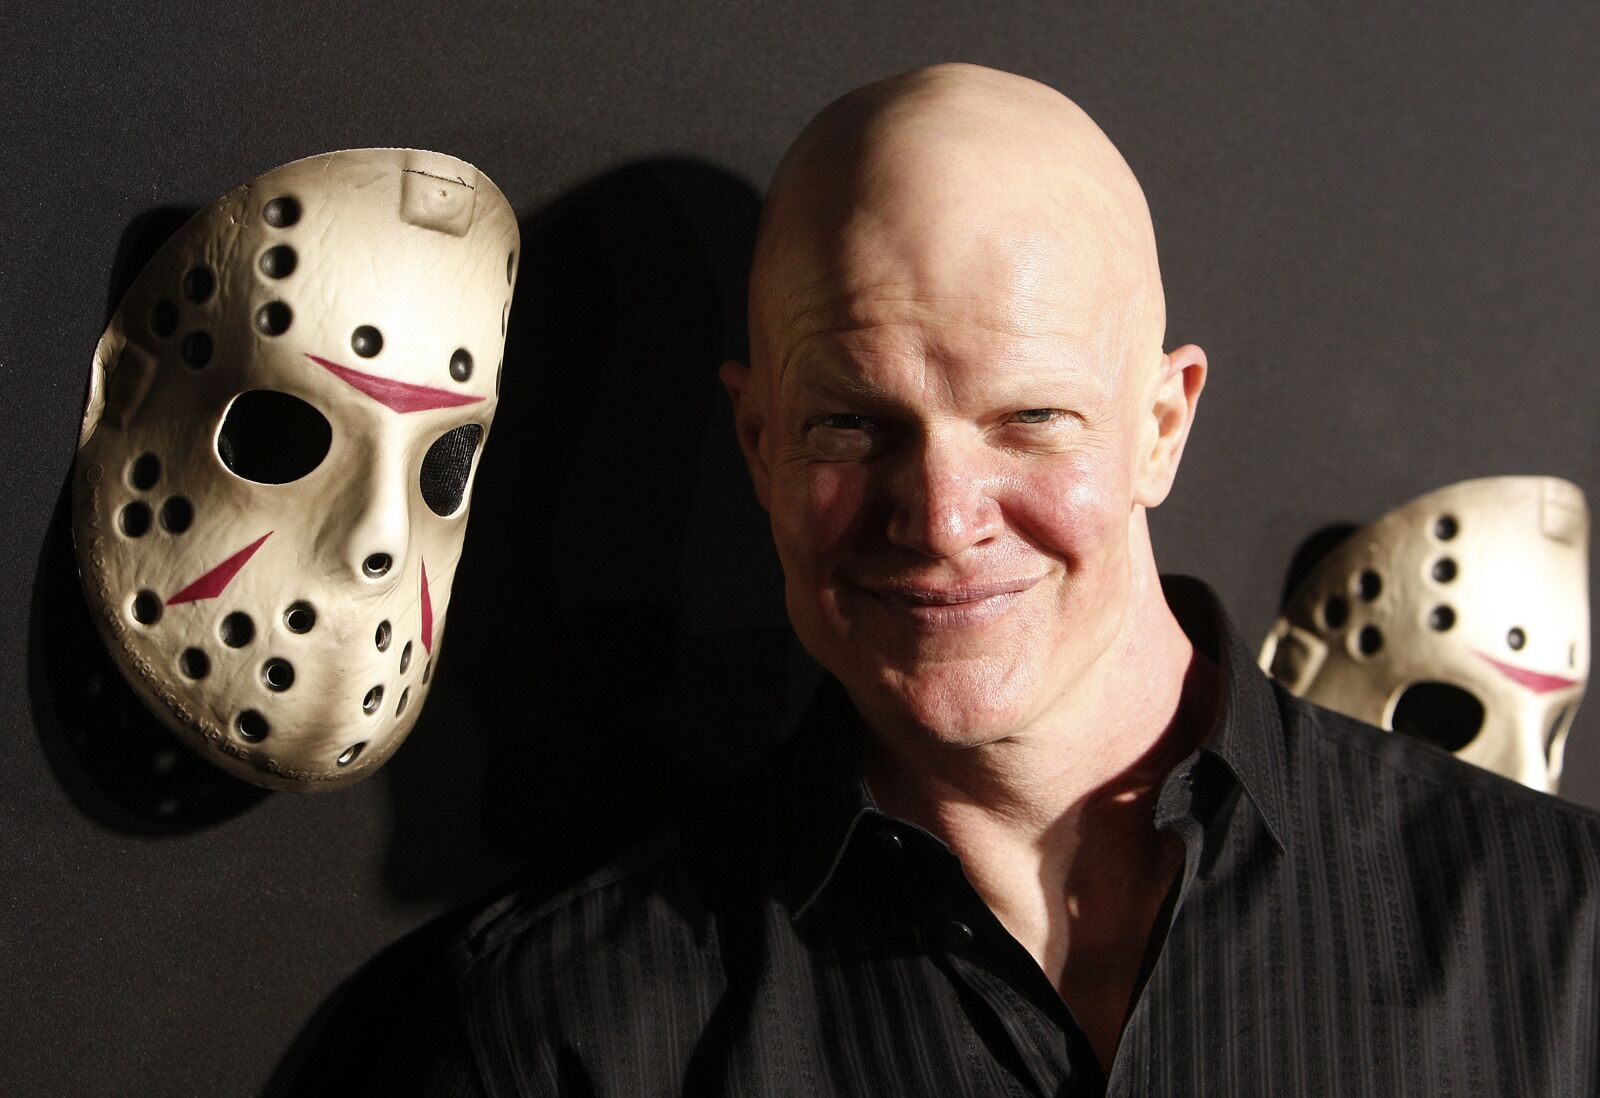 Could you survive a night being chased by Jason Voorhees?